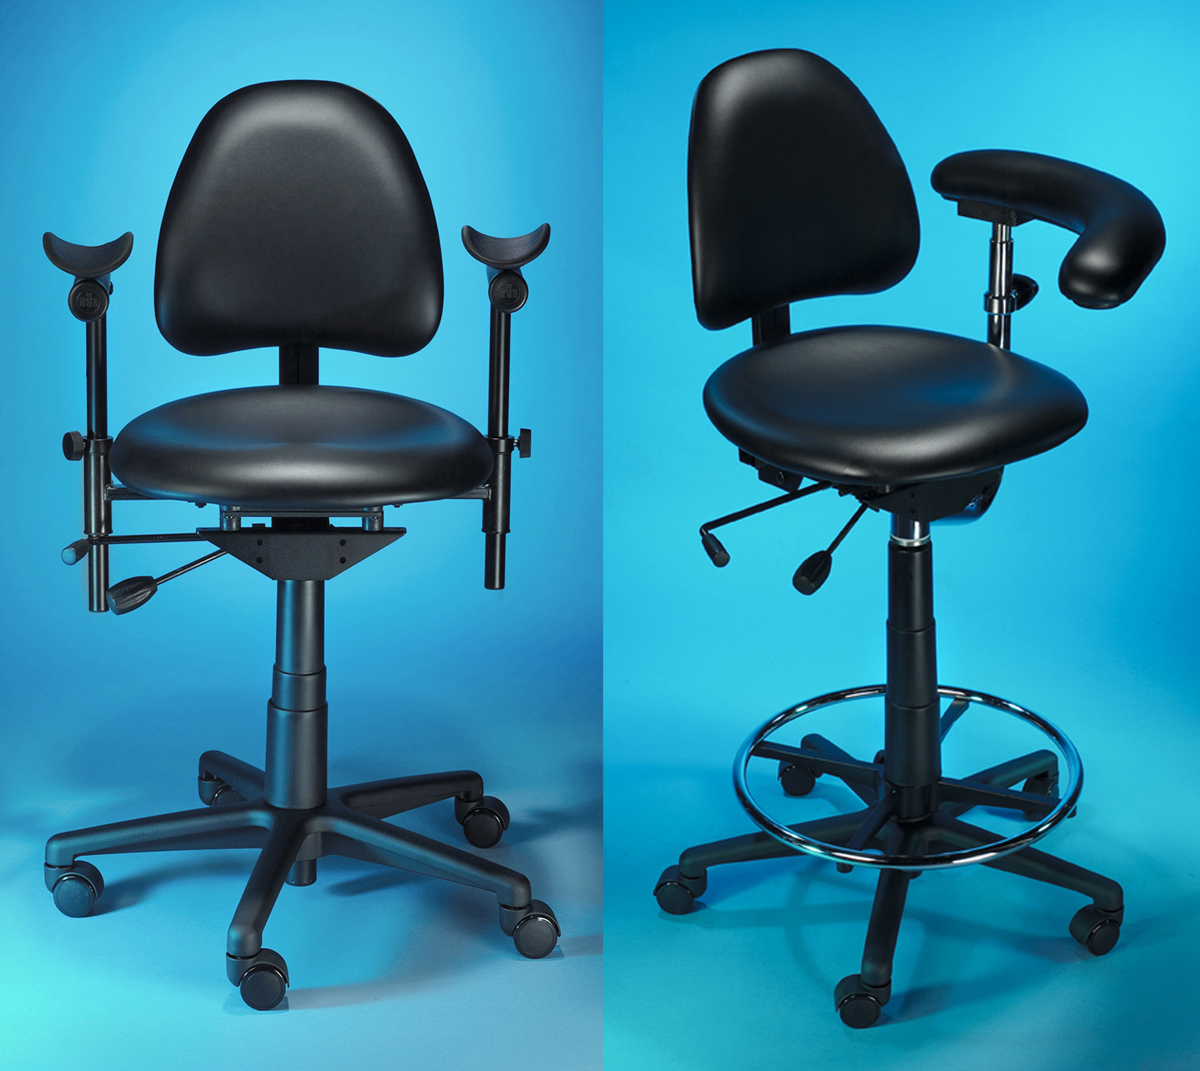 Surgitel ErgoComfort Chairs